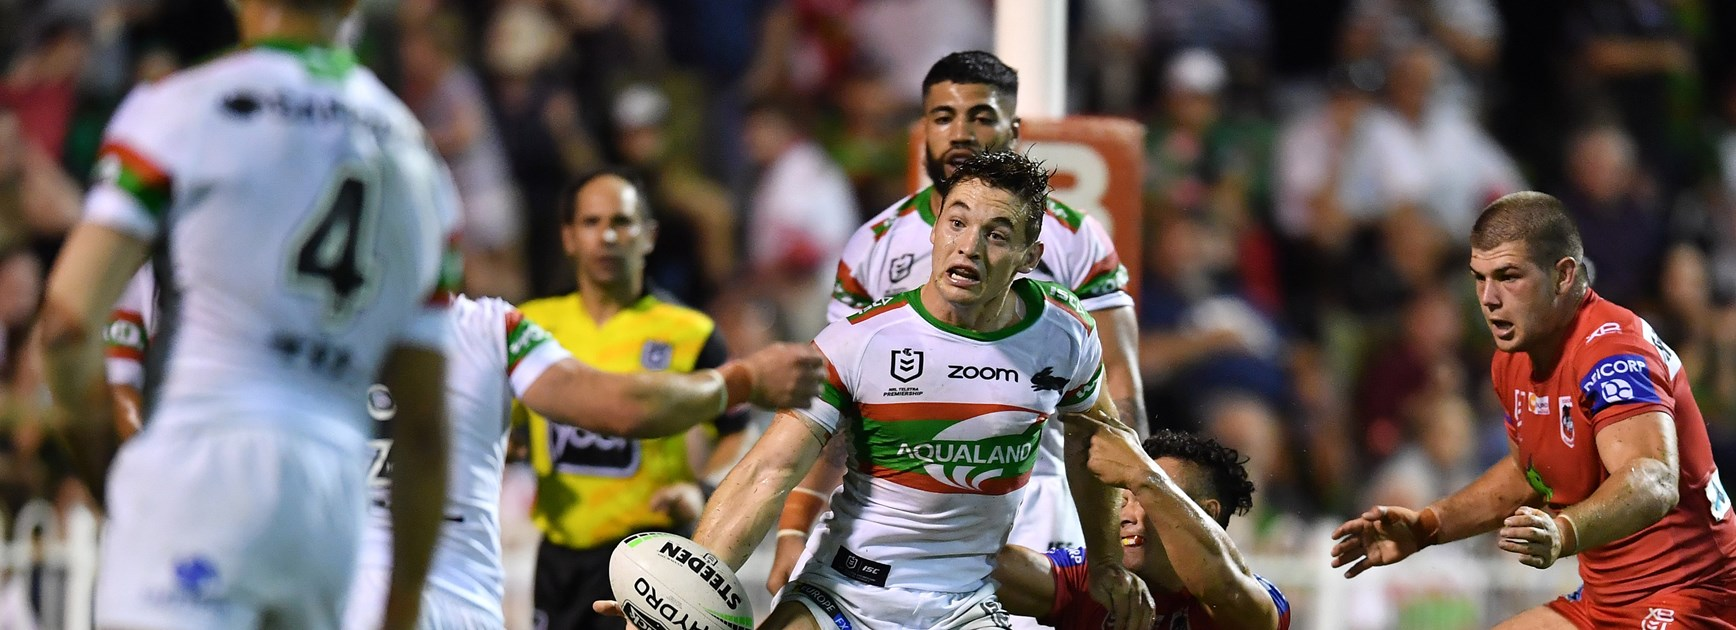 Rabbitohs back-rower Cameron Murray passes against the Dragons at the NRL Nines in Perth.